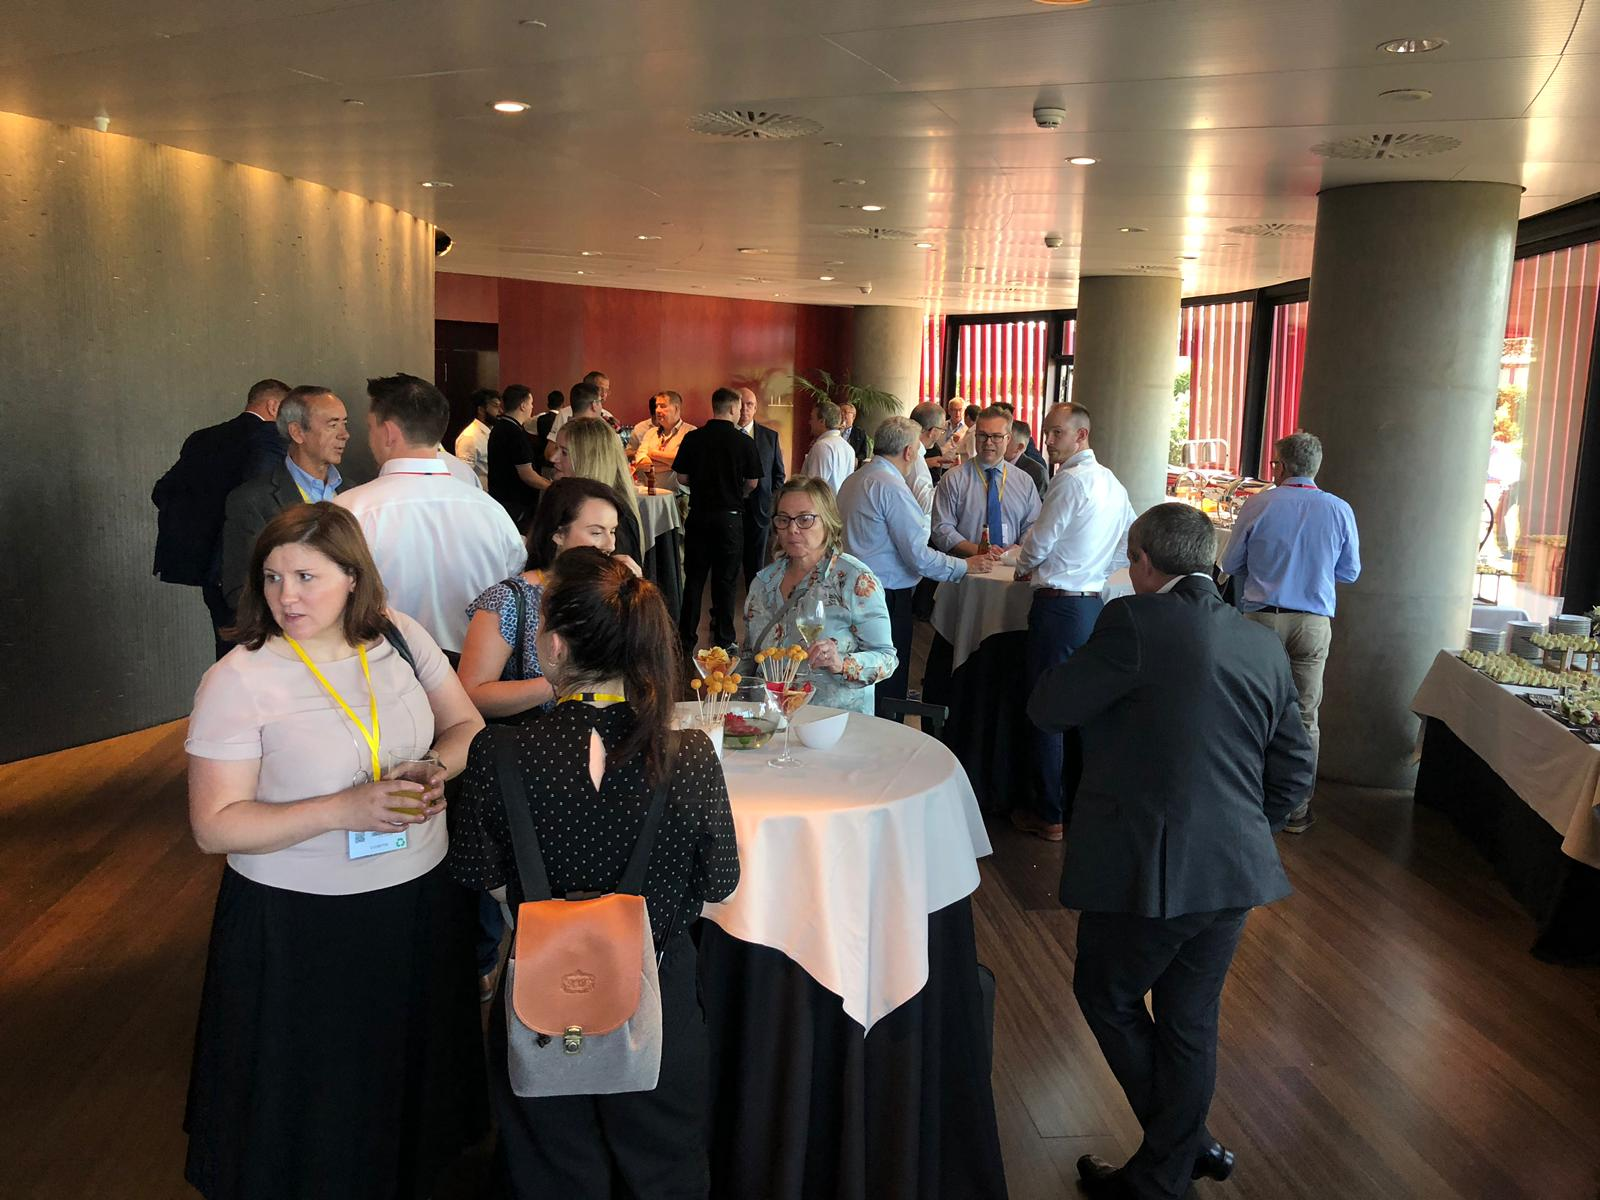 Opportunity for networking at the BTMA event